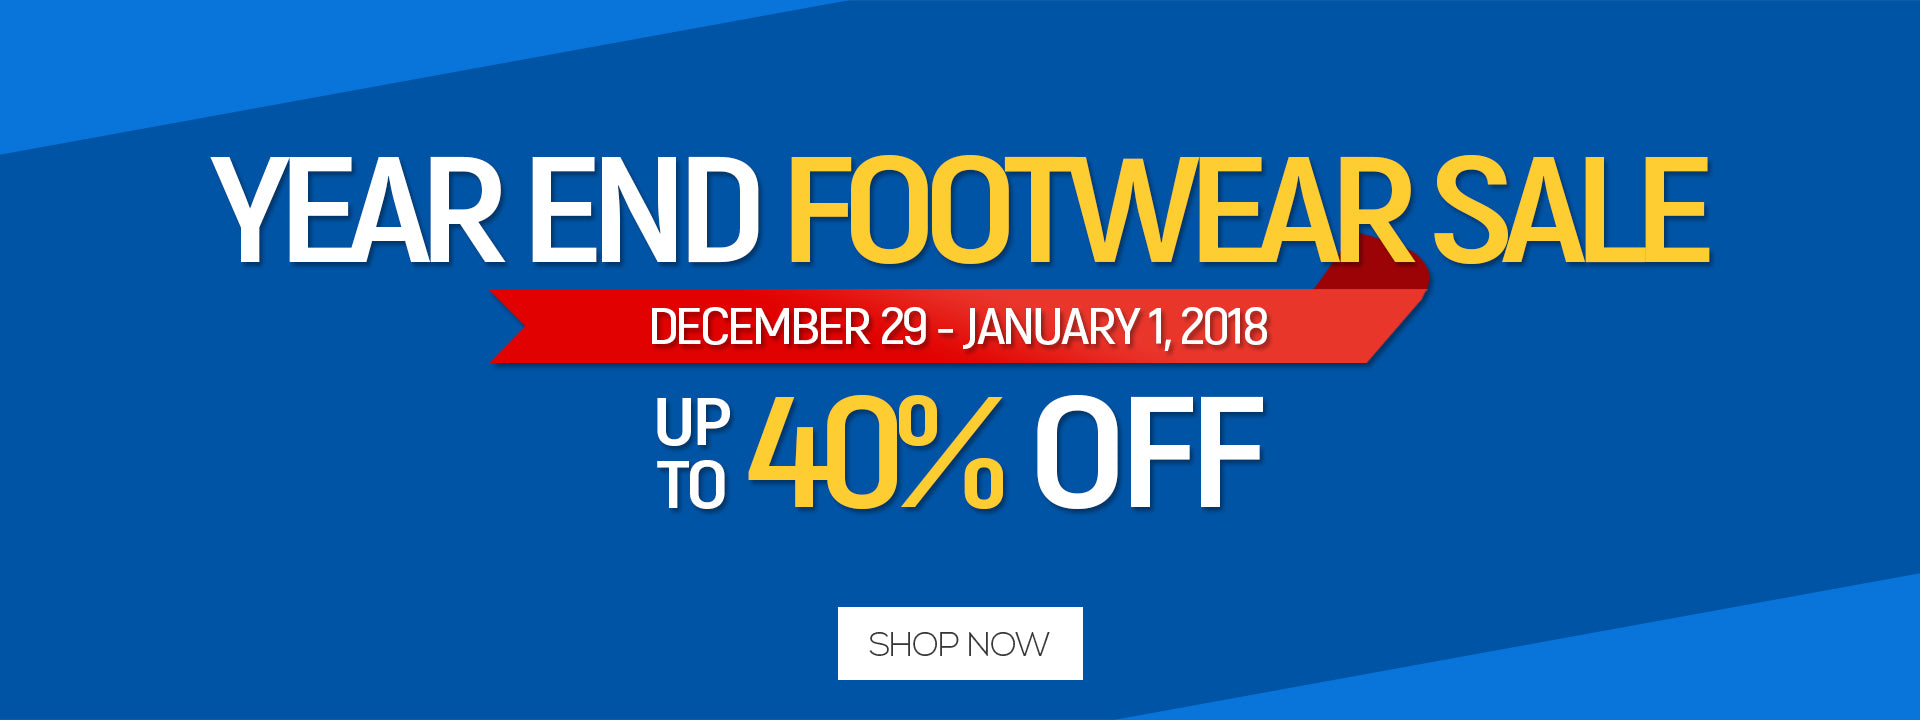 Year-End Footwear Sale